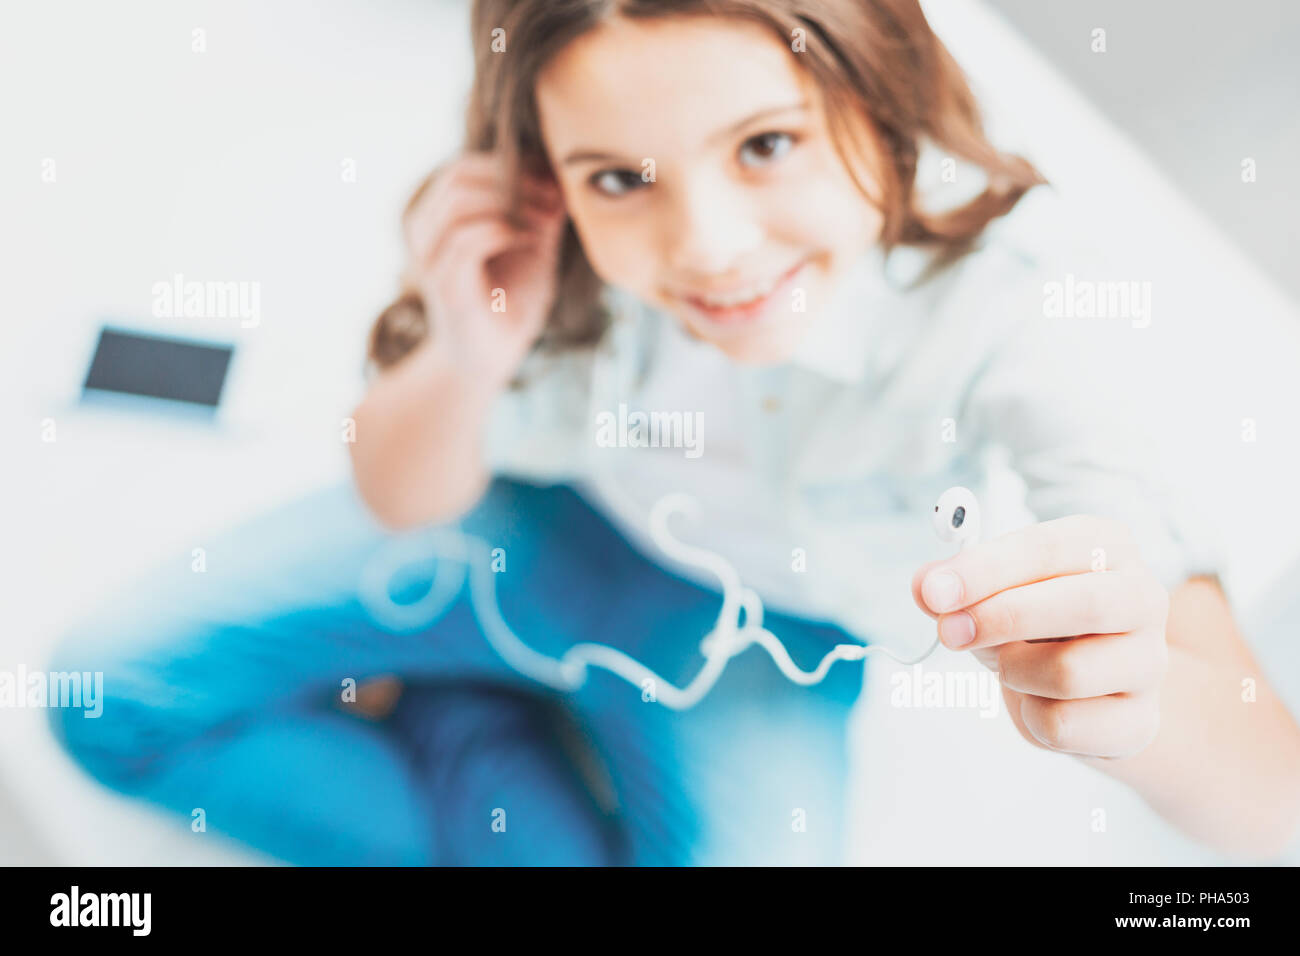 Loving daughter sharing earphones with her caring mother Stock Photo